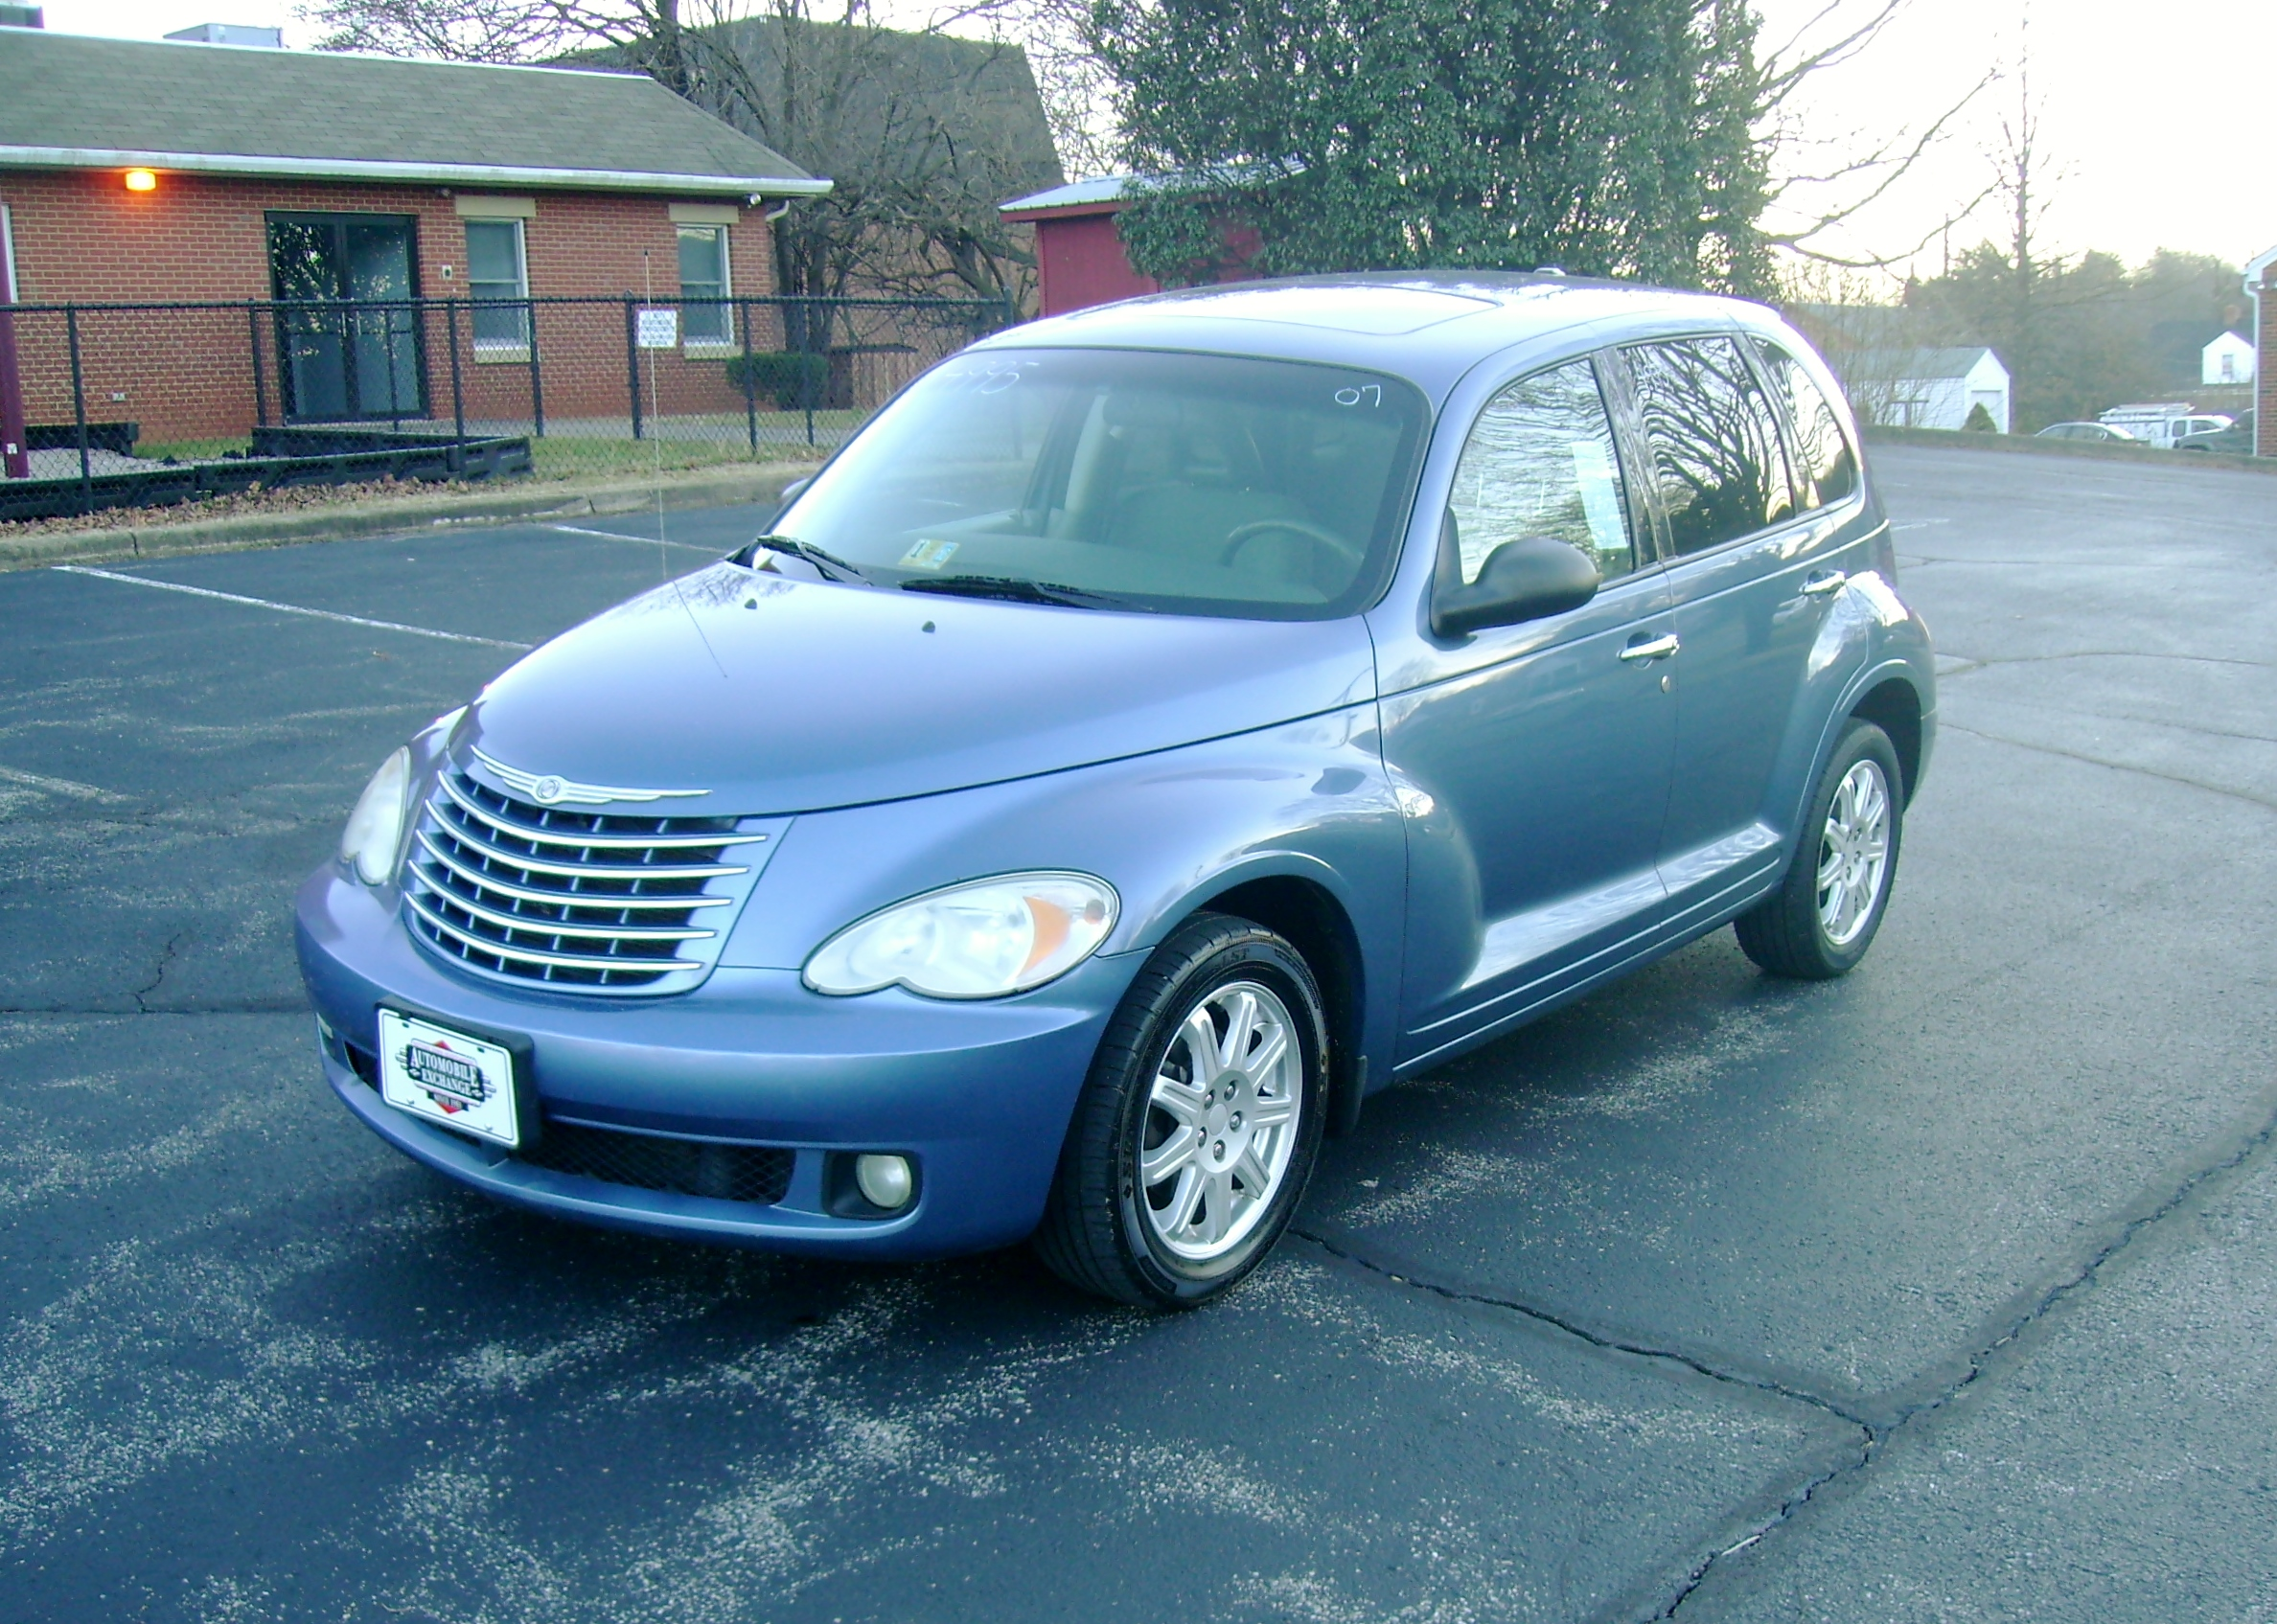 2007 Chrysler Pt Cruiser Photos Informations Articles Fuel Filter 21